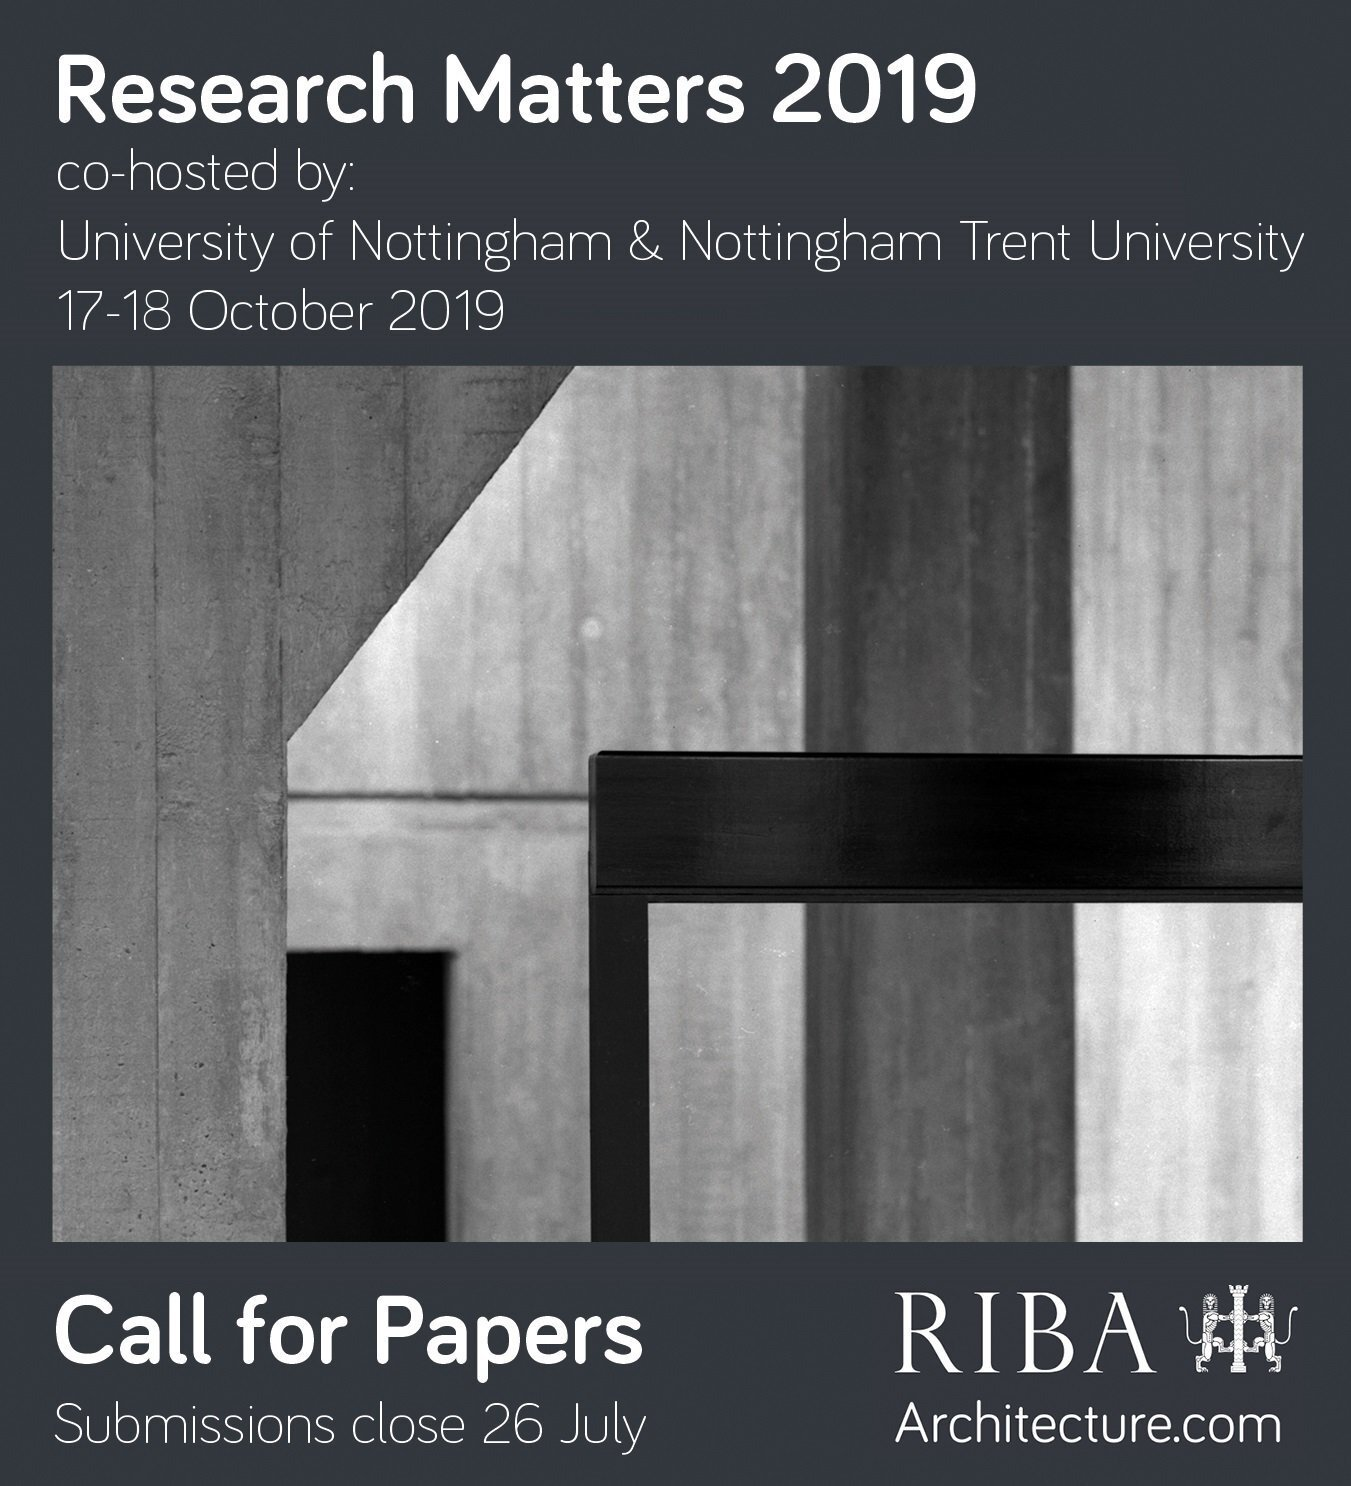 RIBA Research Matters | University of Nottingham and Nottingham Trent University 17 October to 18 October, 2019